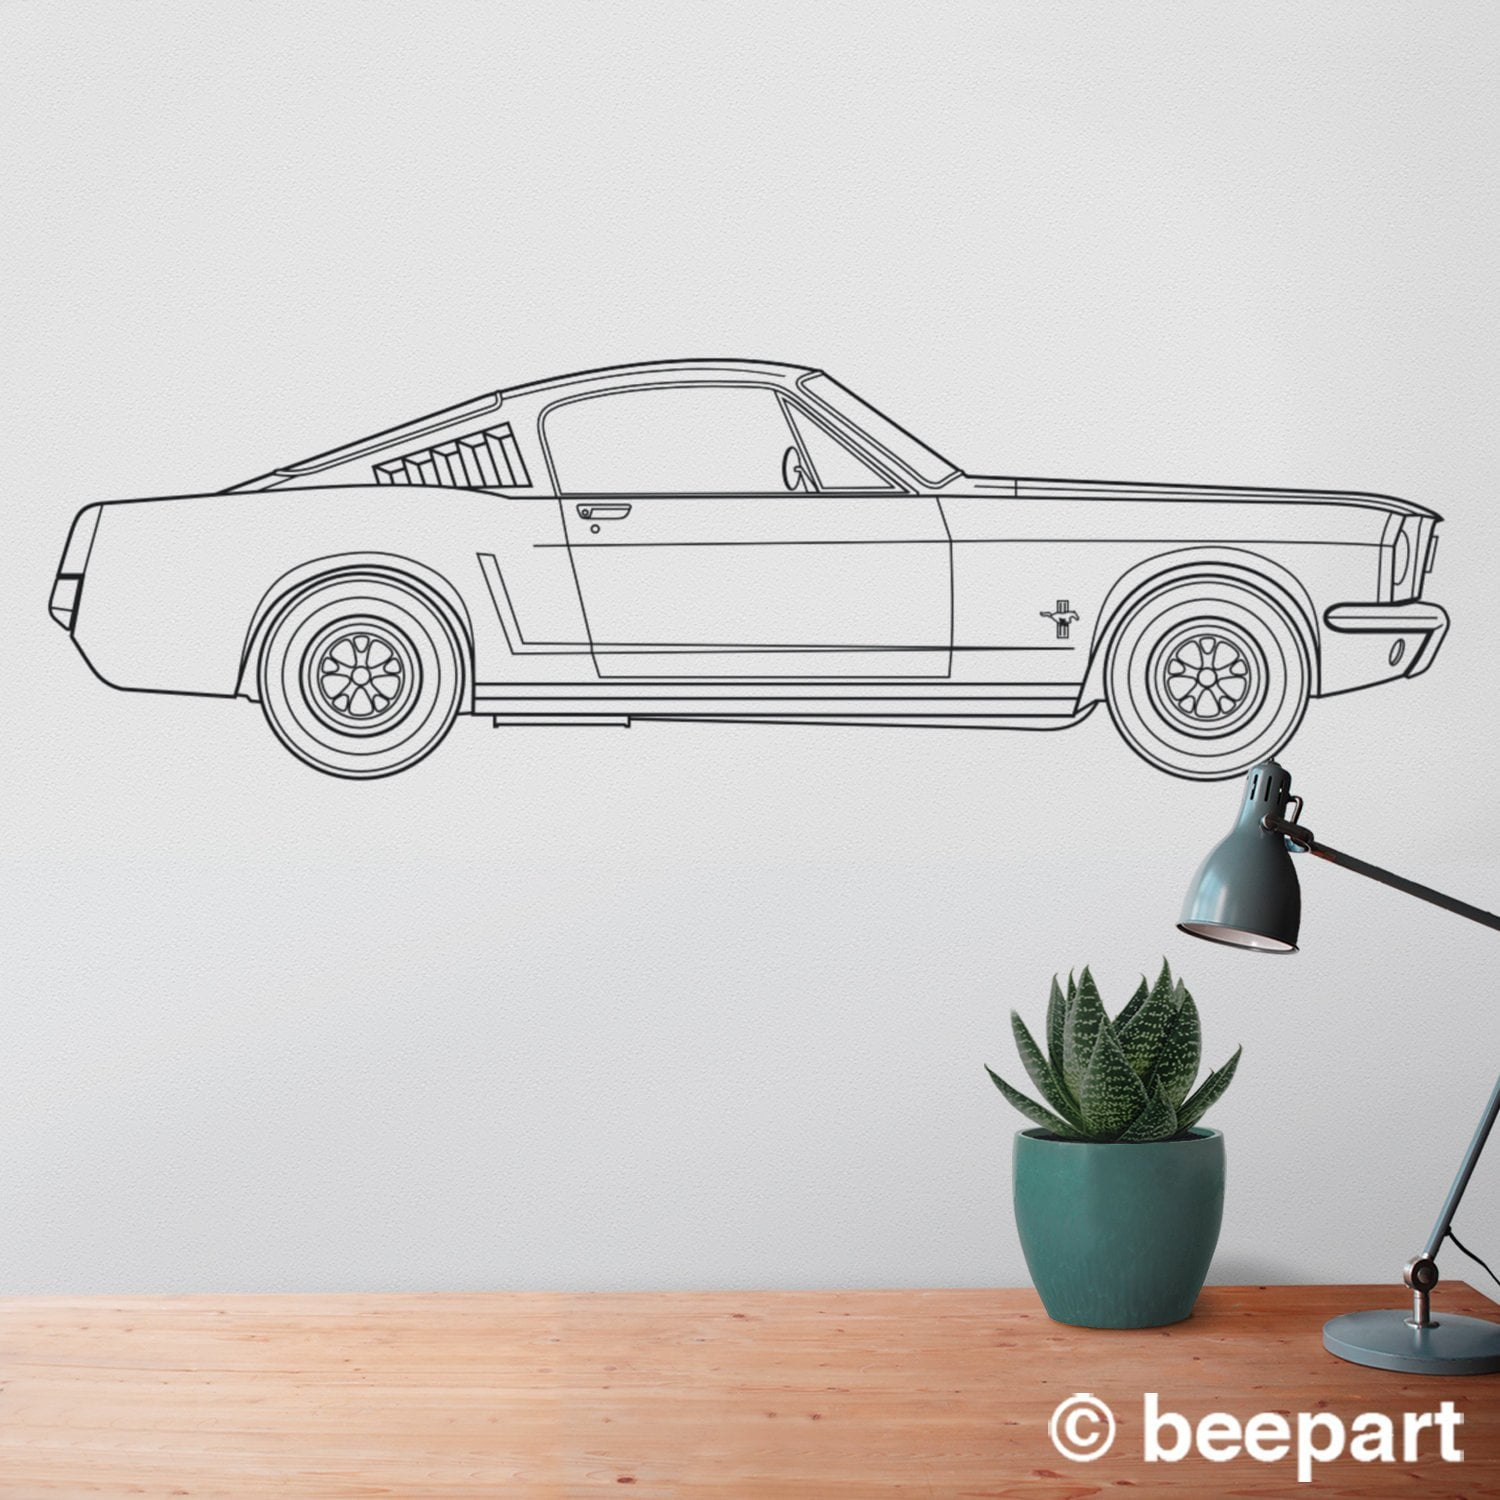 Ford mustang wall decal 65 mustang fastback art pony car art auto blueprint art automobile design muscle car art car lover gift